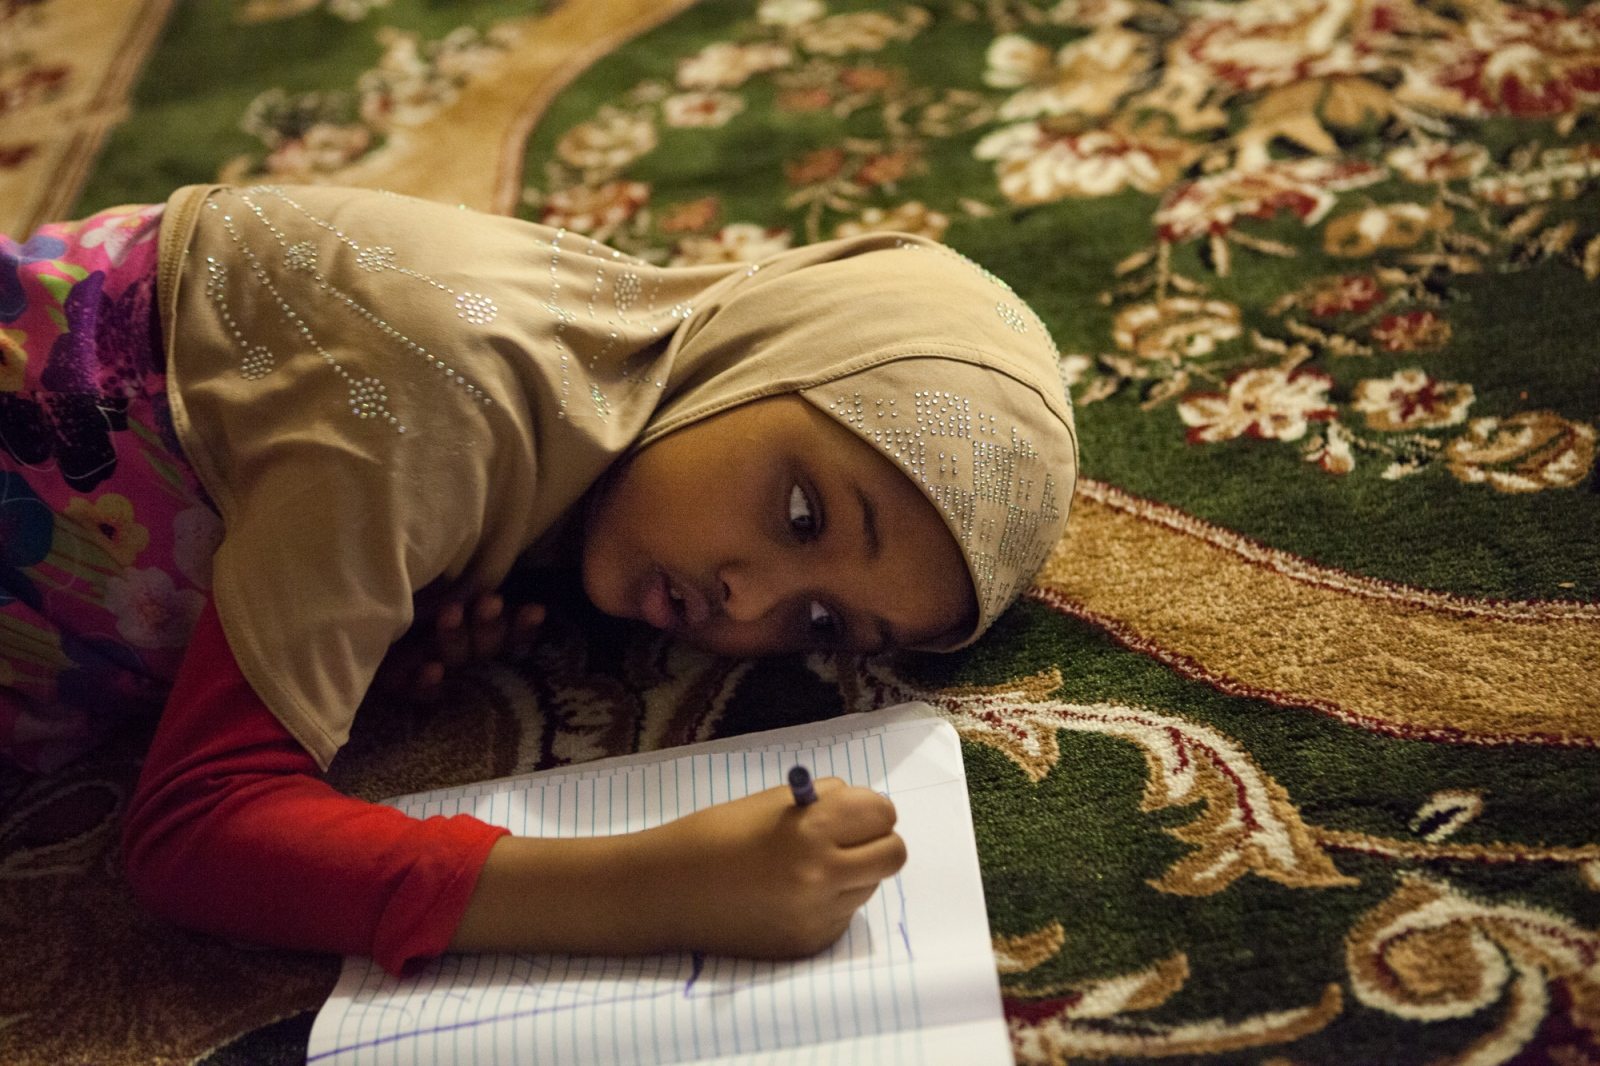 Amal draws pictures in her coloring book on the floor of her home in Minneapolis.